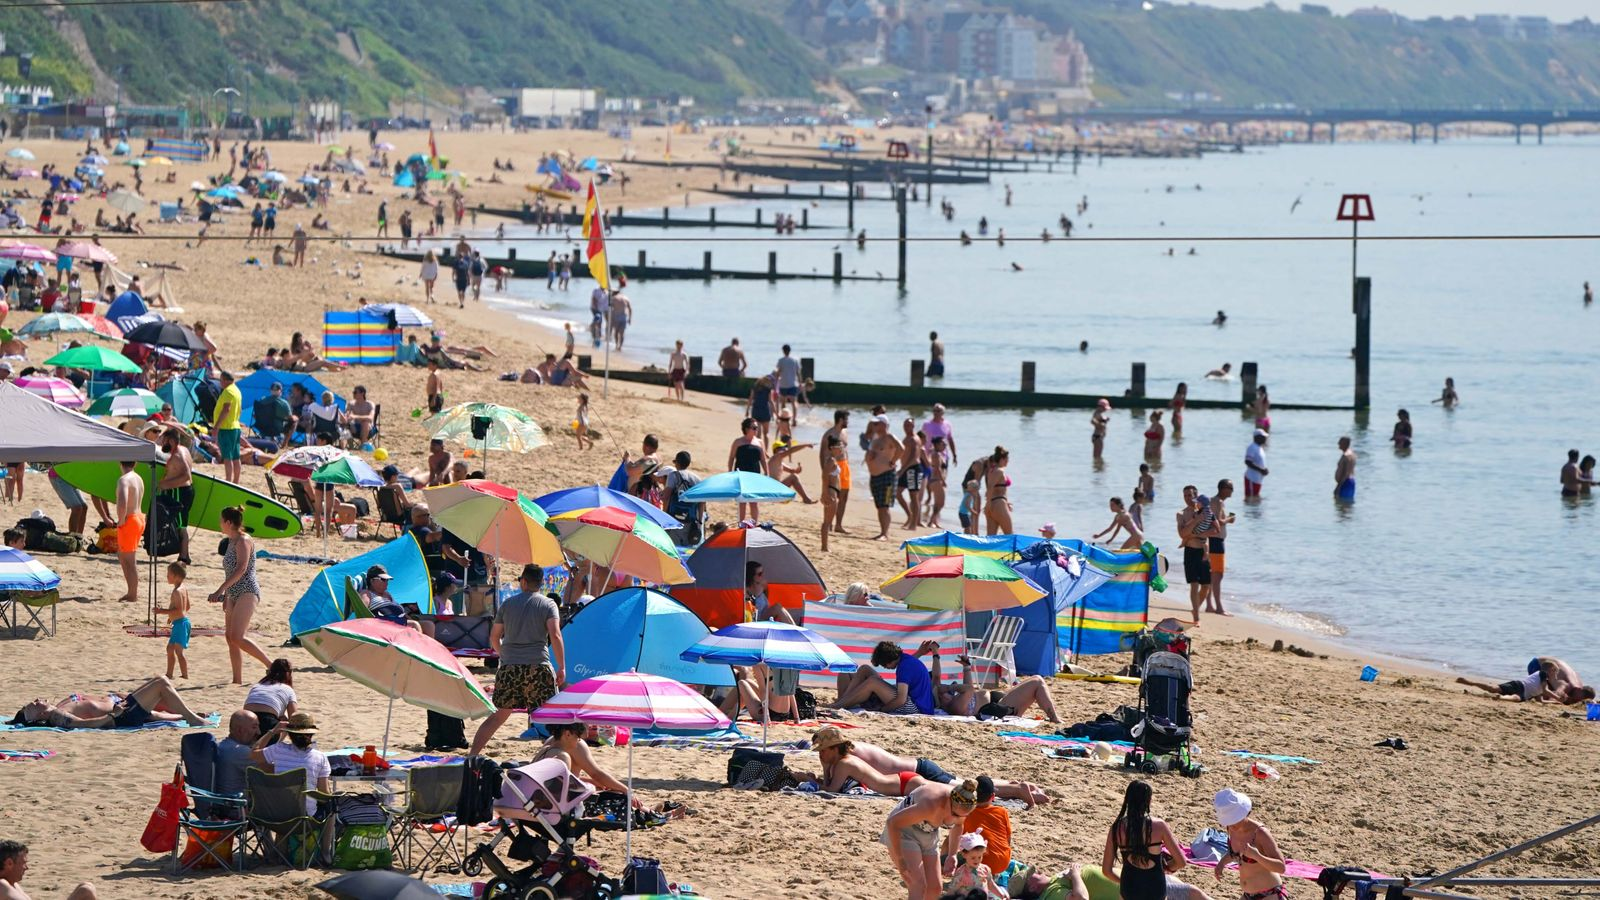 UK weather: Heat is an invisible killer – we ignore the rising temperature at our peril